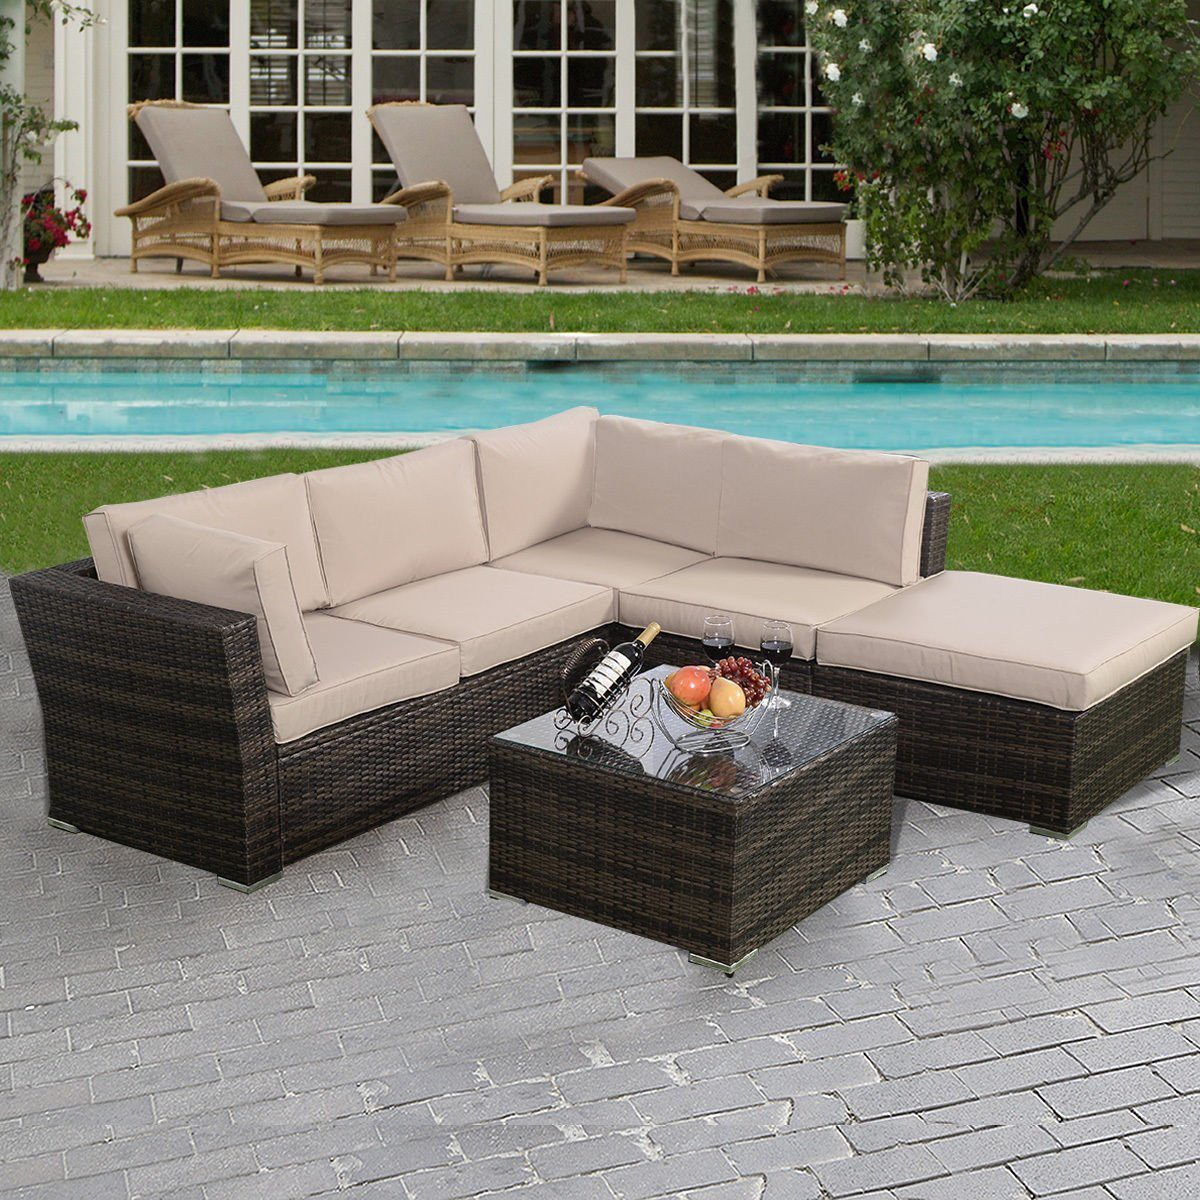 Giantex 4pc Wicker Rattan Outdoor Sectional Sofa Set